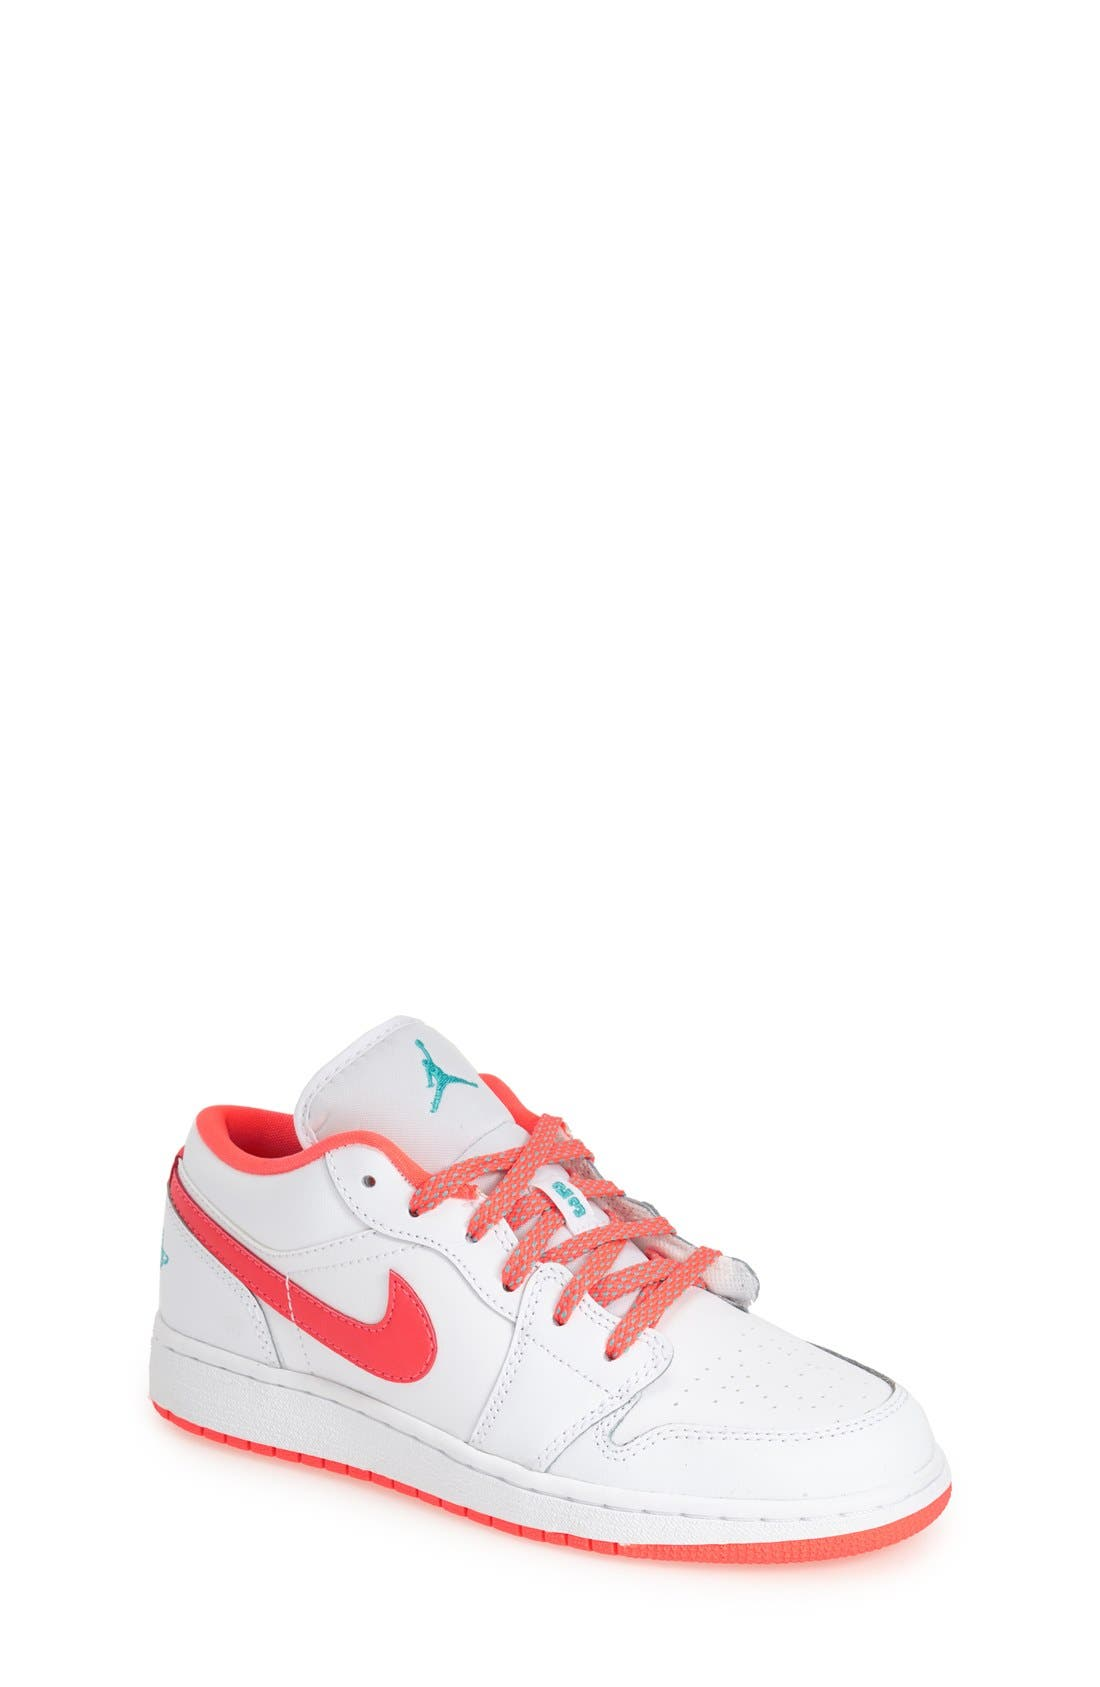 Nike 'Jordan 1 Low' Basketball Shoe,                             Main thumbnail 2, color,